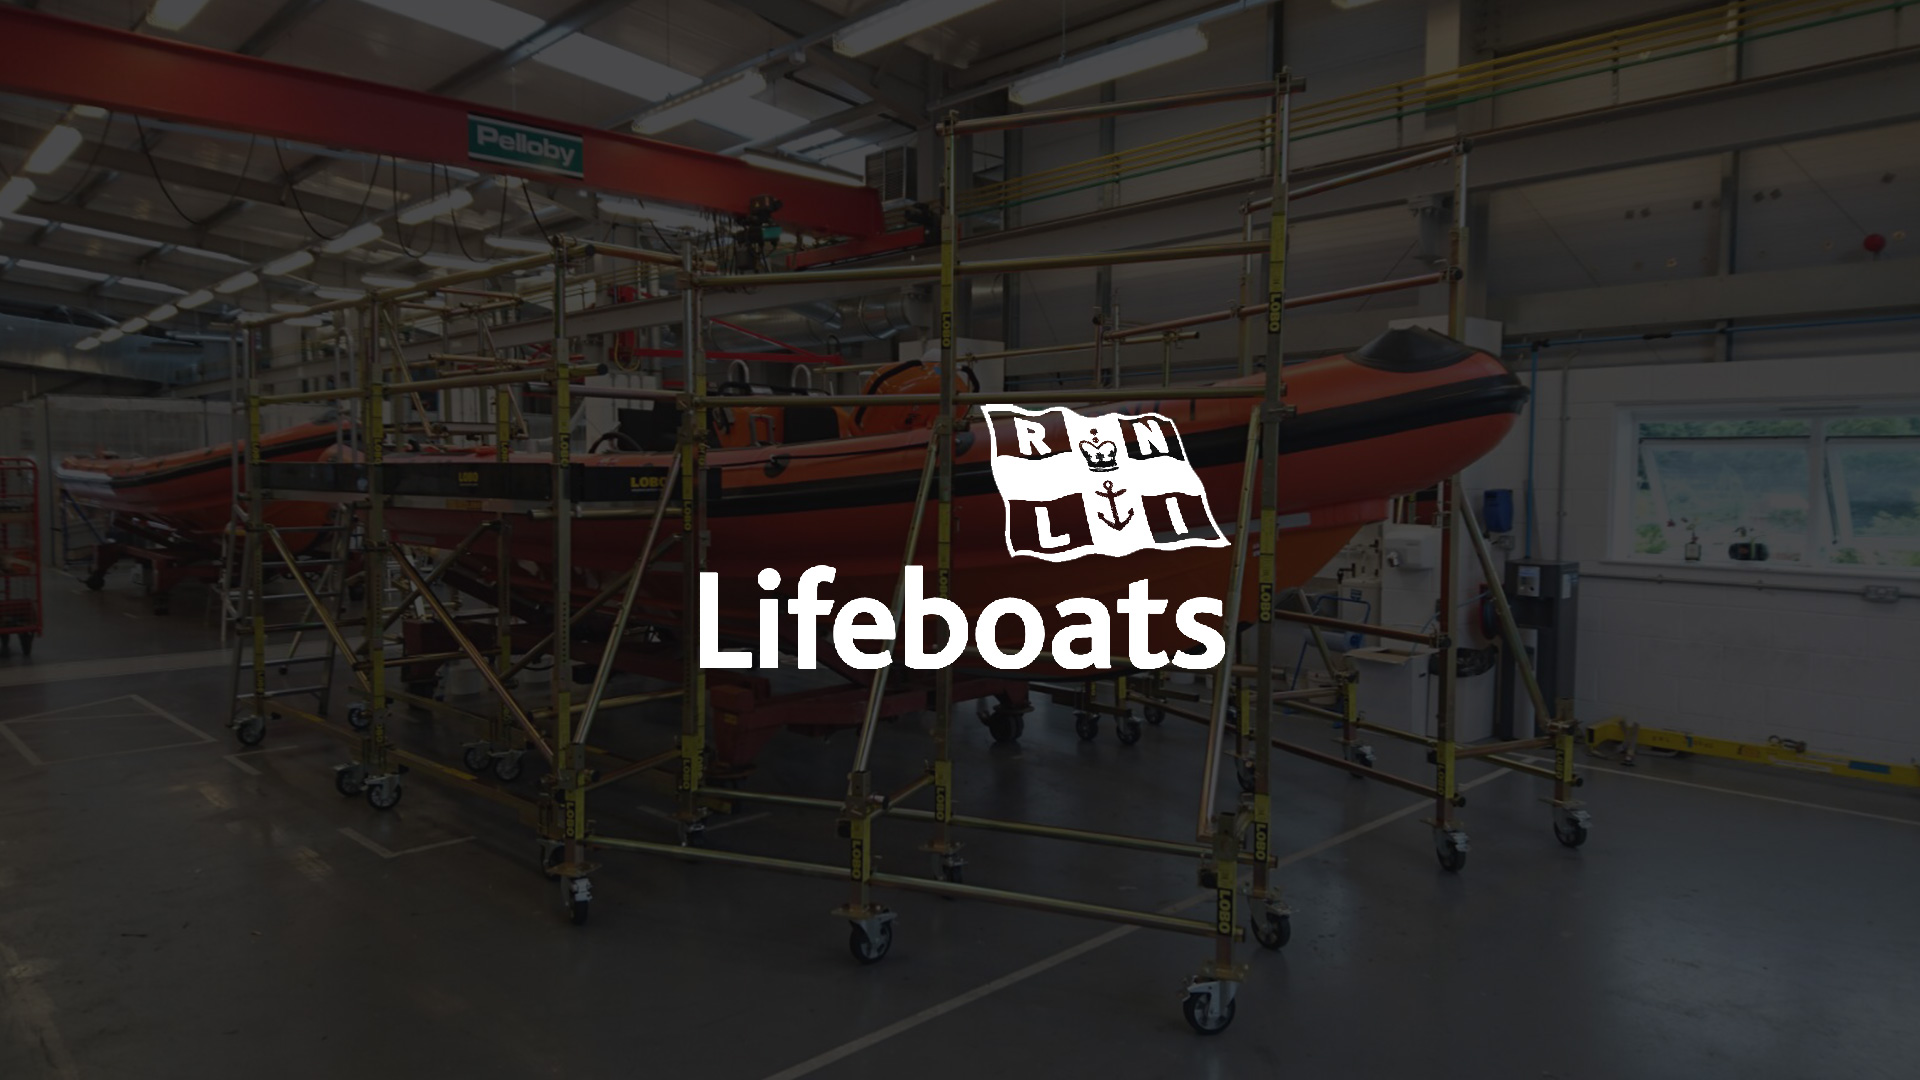 Royal National Lifeboat Institution (RNLI): Shipping & Marine